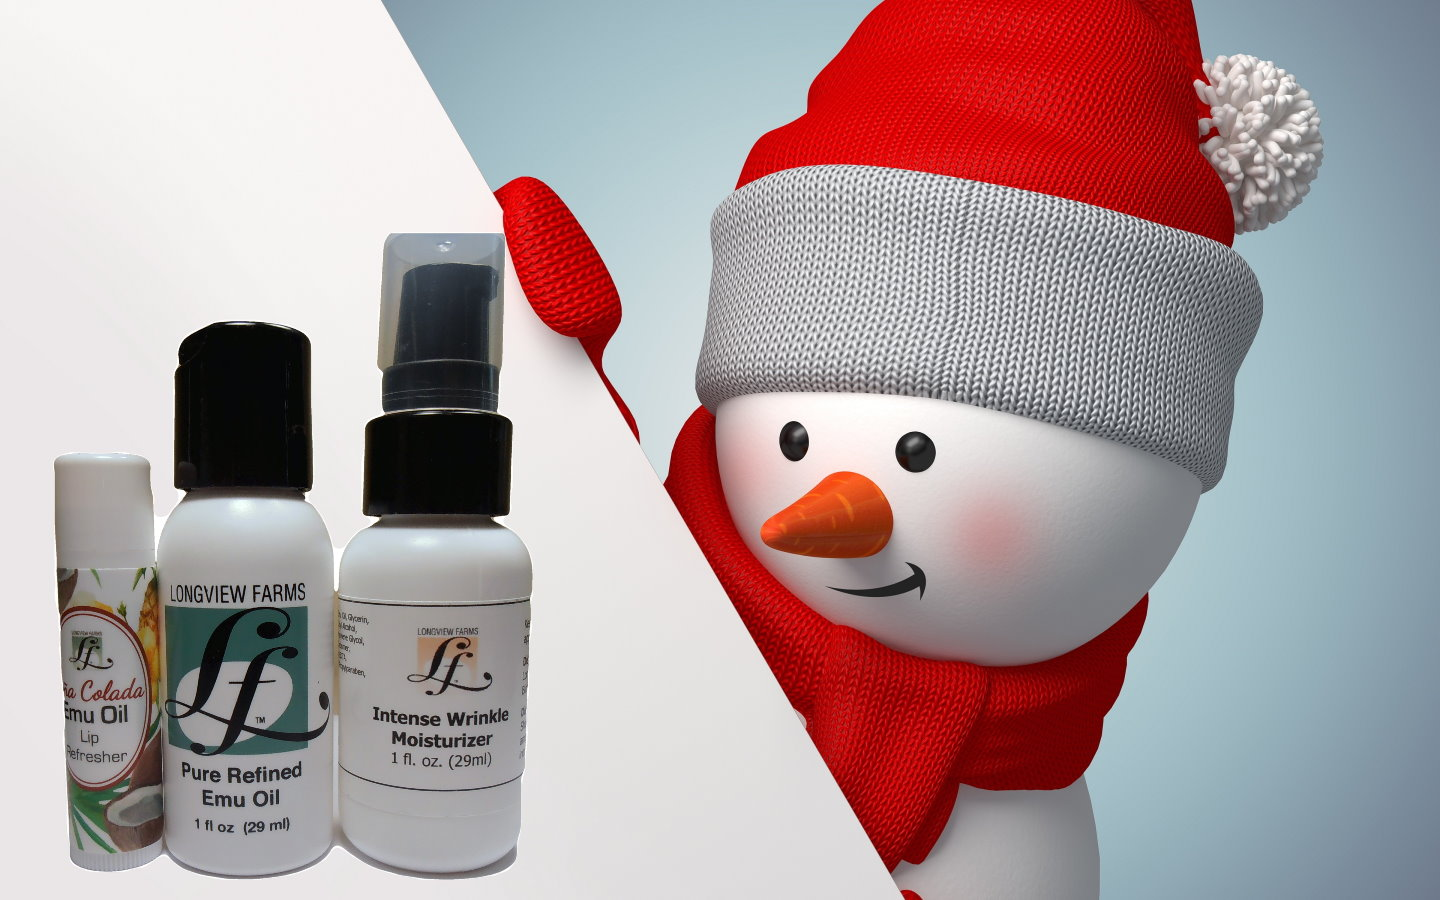 Emu oil products gift